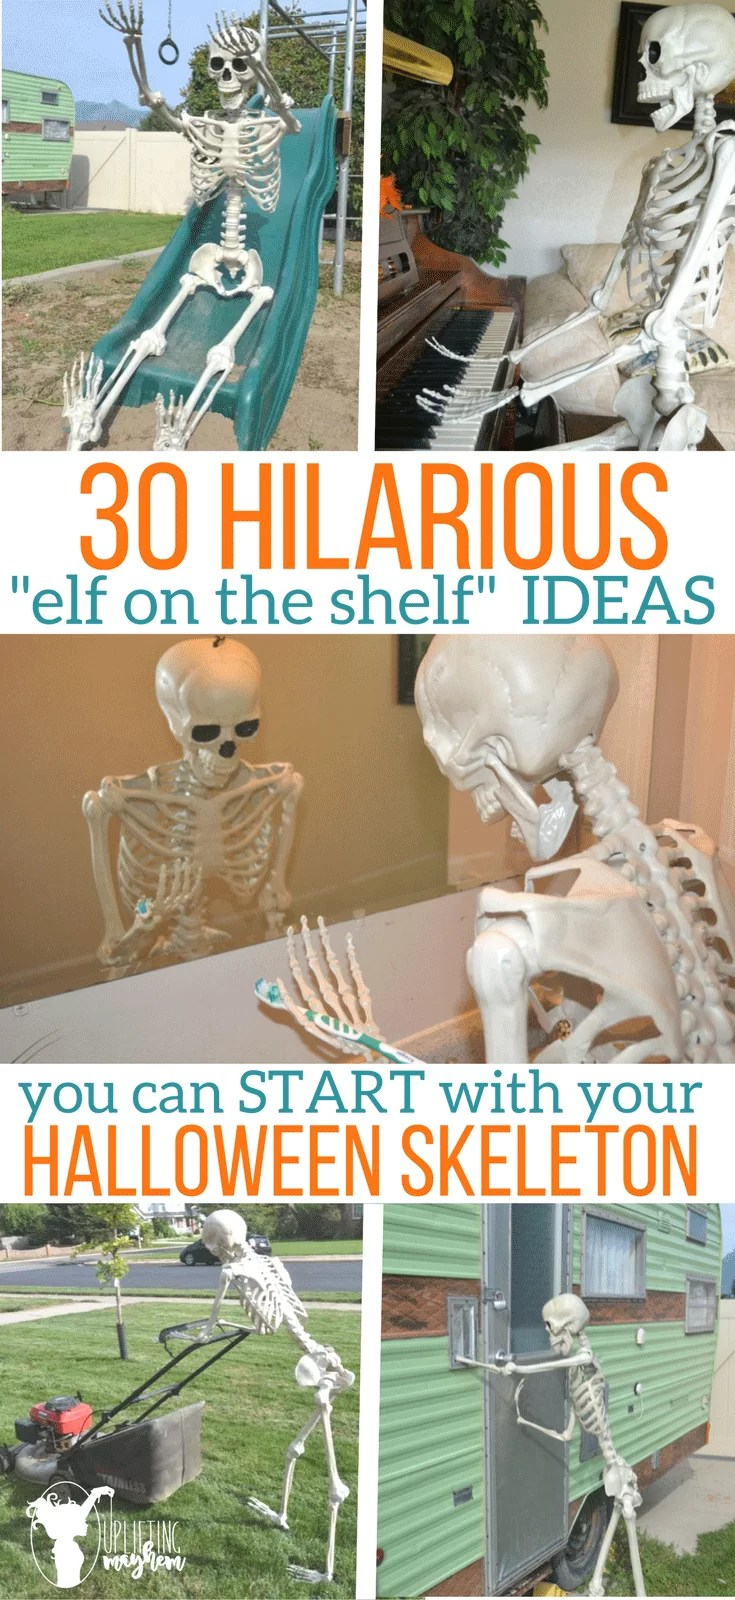 30 hilarious elf on the shelf ideas for your halloween skeleton uplifting mayhem. Black Bedroom Furniture Sets. Home Design Ideas